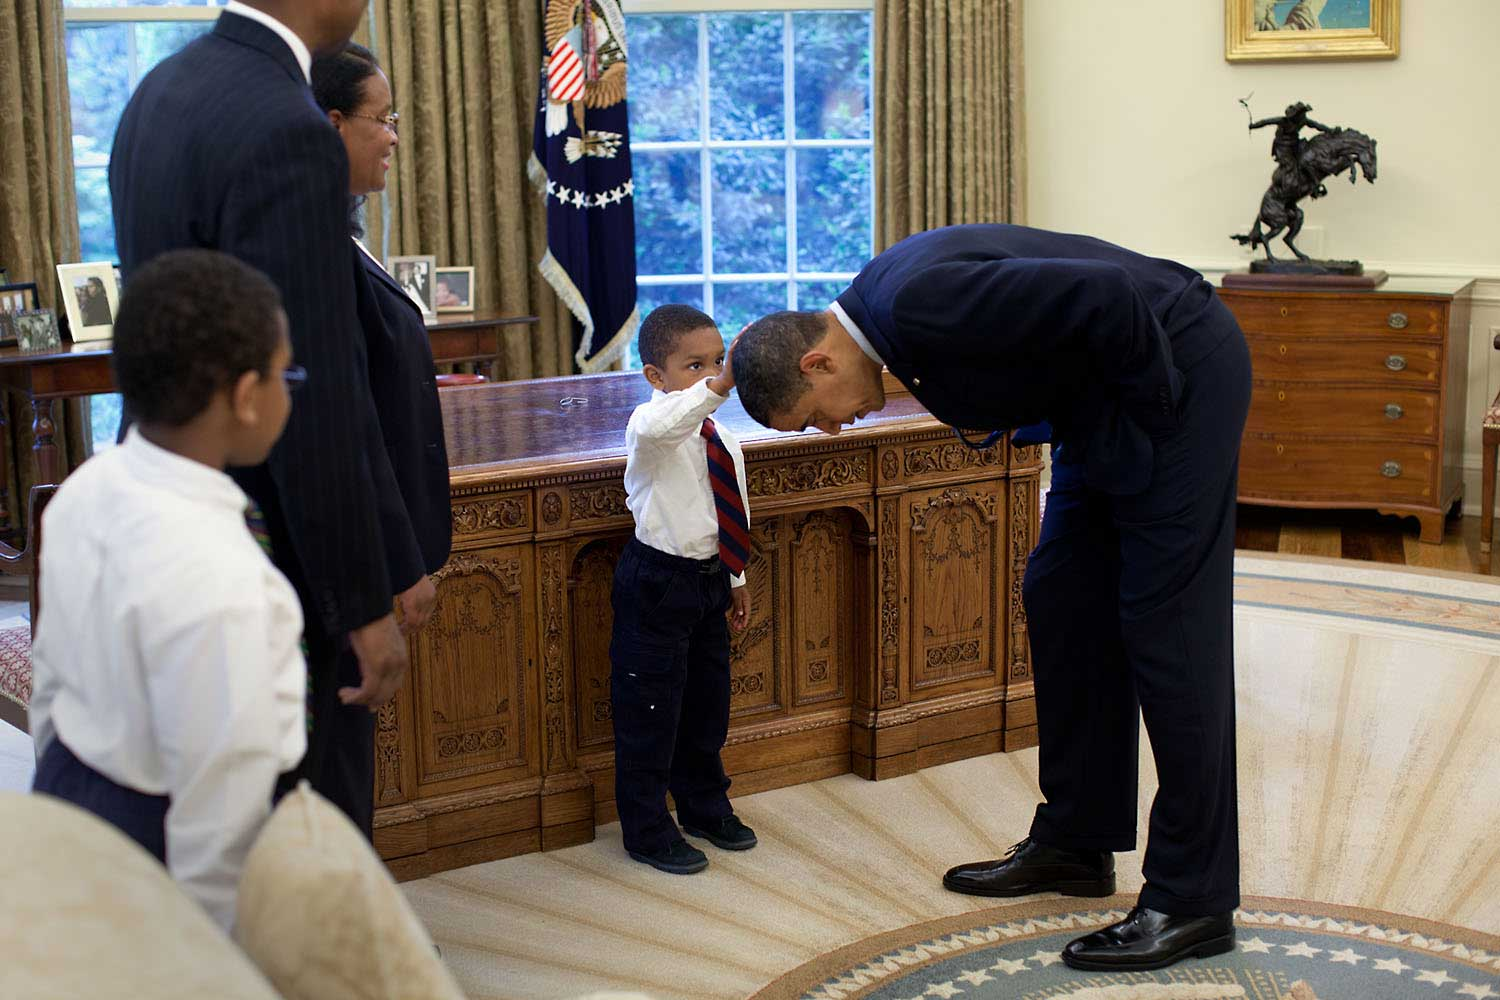 """A National Security staffer, Carlton Philadelphia, brought his family to the Oval Office for a farewell photo with President Obama. Carlton's son, Jacob, softly told the President he had just gotten a haircut like President Obama, and asked if he could feel the President's head to see if it felt the same as his."""